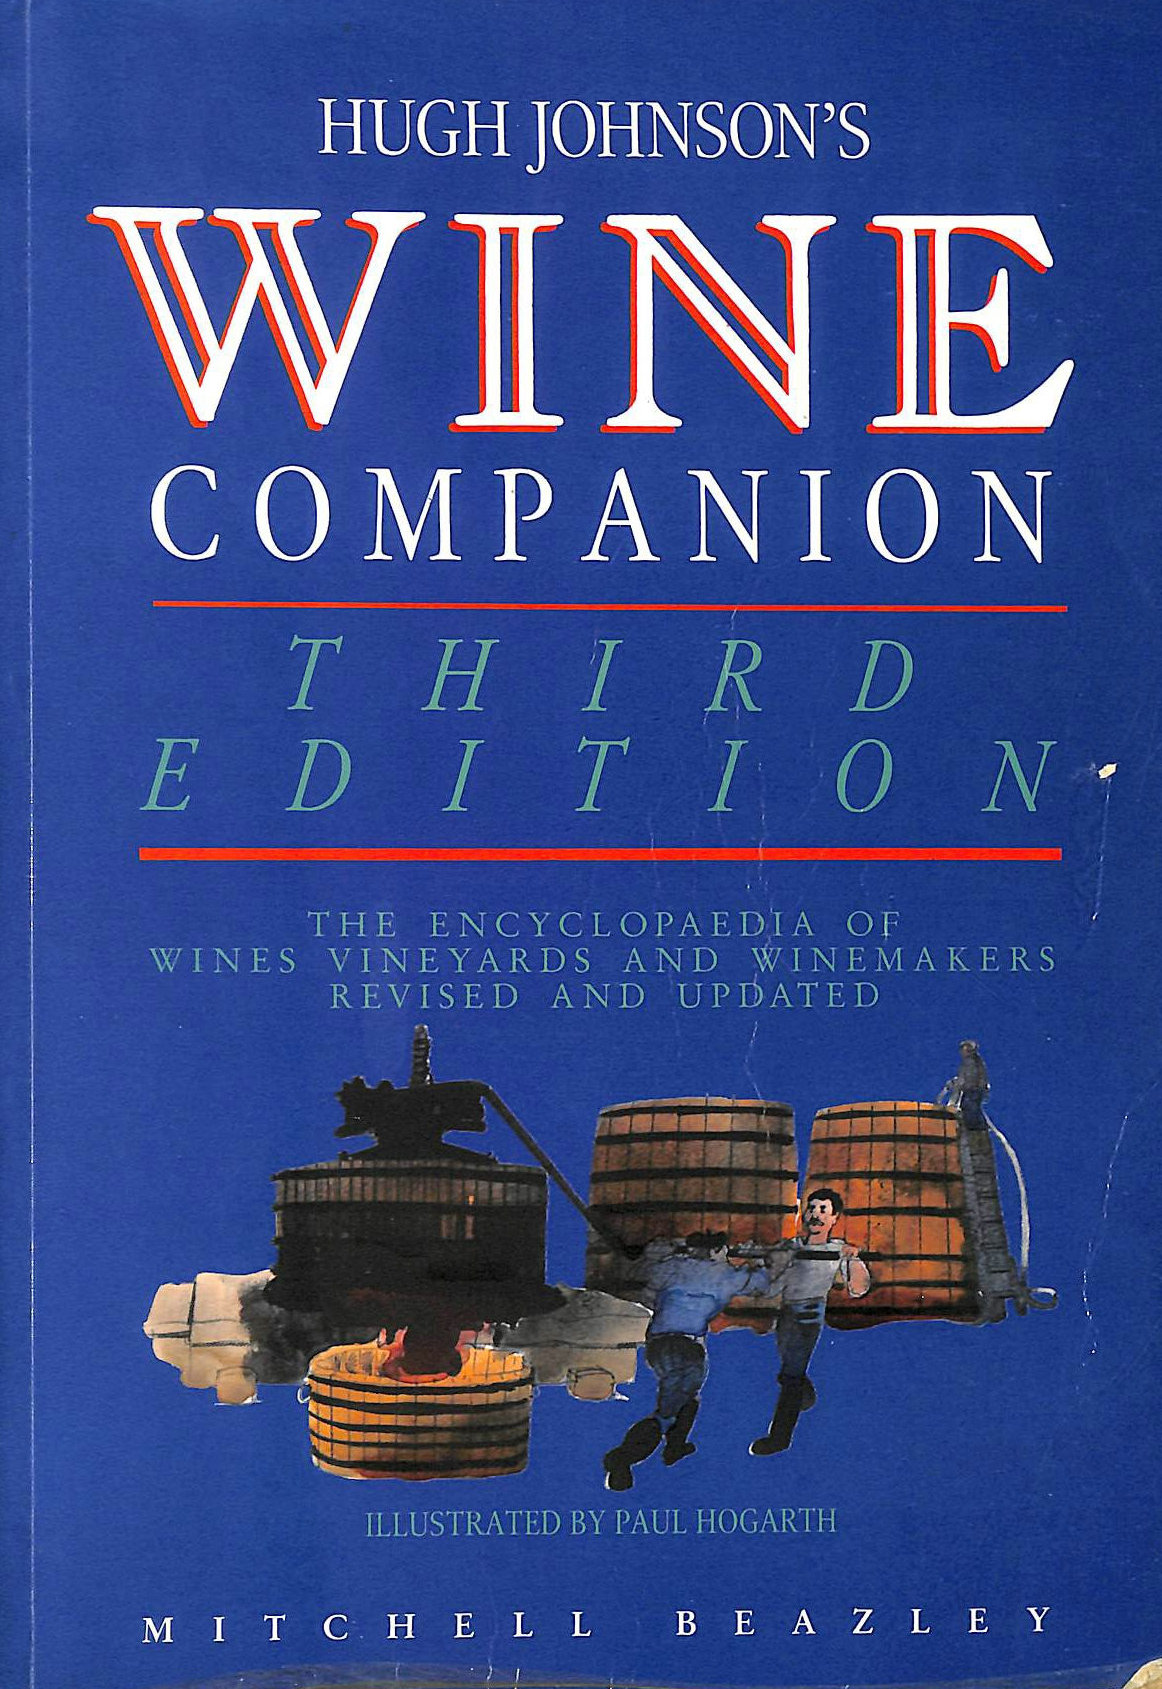 Image for Wine Companion 3Rd Edn: The Encyclopaedia of Wines, Vineyards and Winemakers